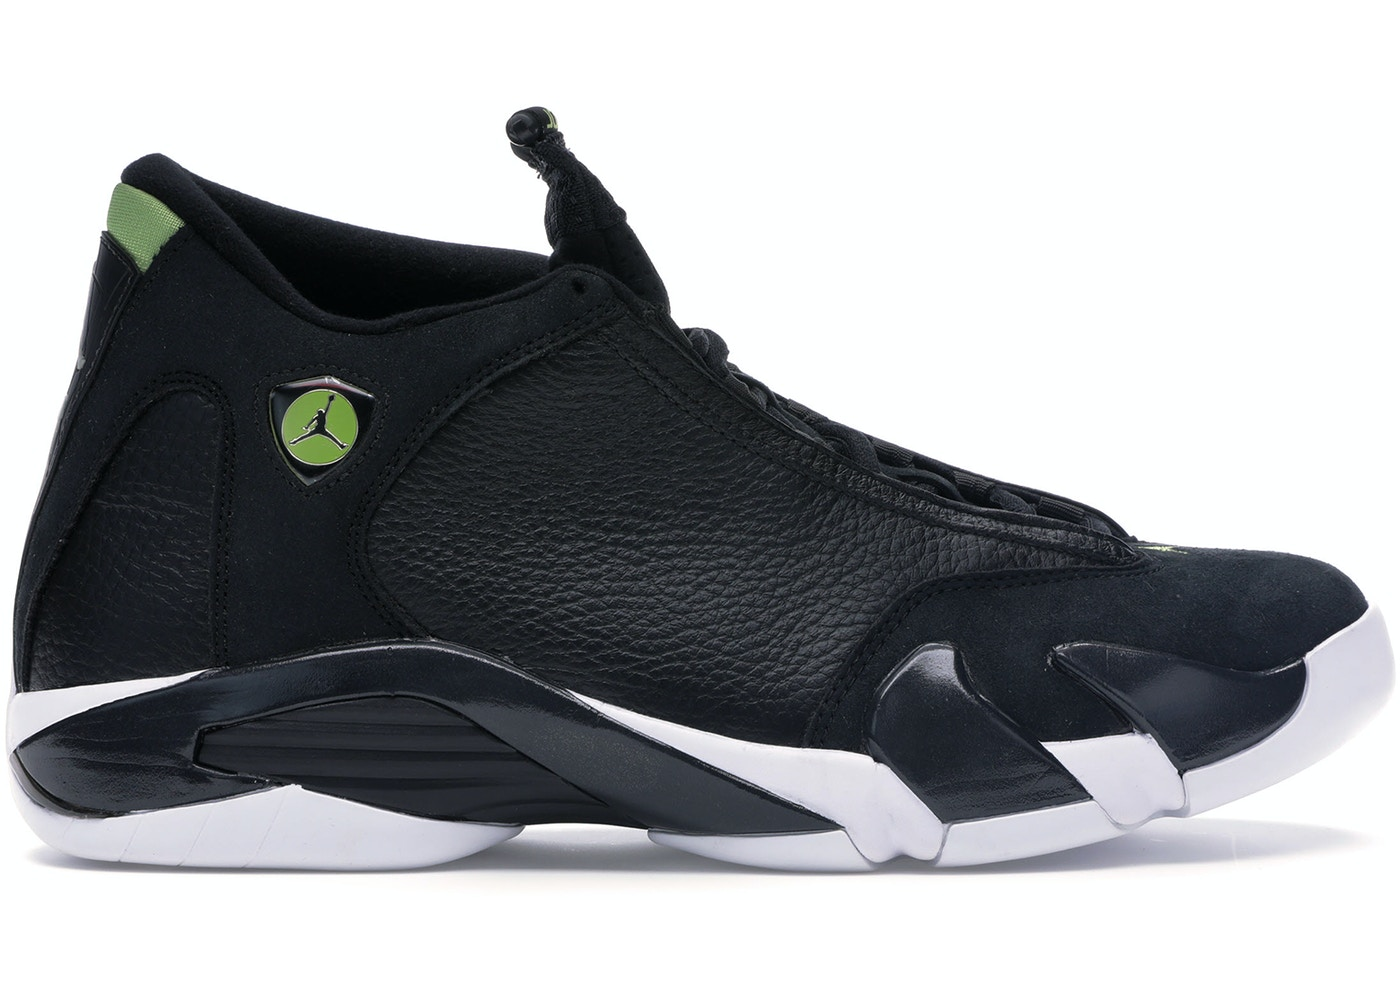 e05e700f6f5a Buy Air Jordan 14 Shoes   Deadstock Sneakers